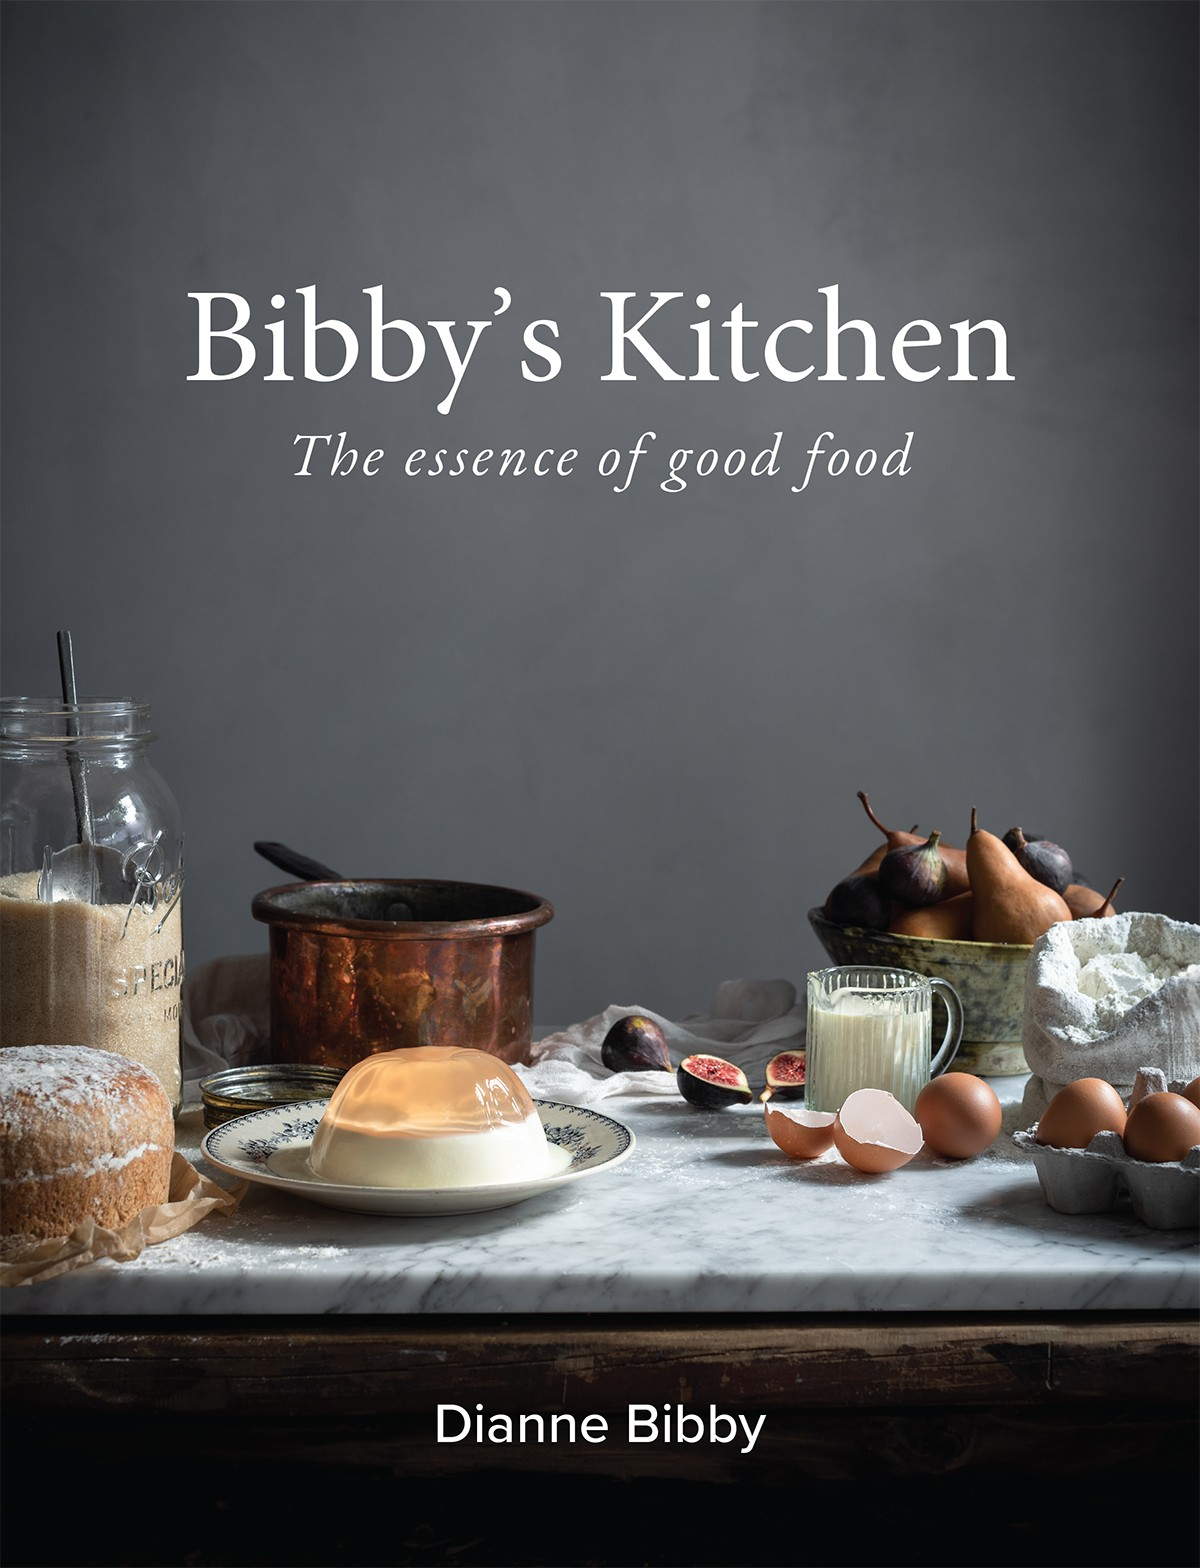 Local favourites | Page 2 of 10 | Bibby's Kitchen @ 36 | A food blog sharing recipes, stories and travel | Page 2